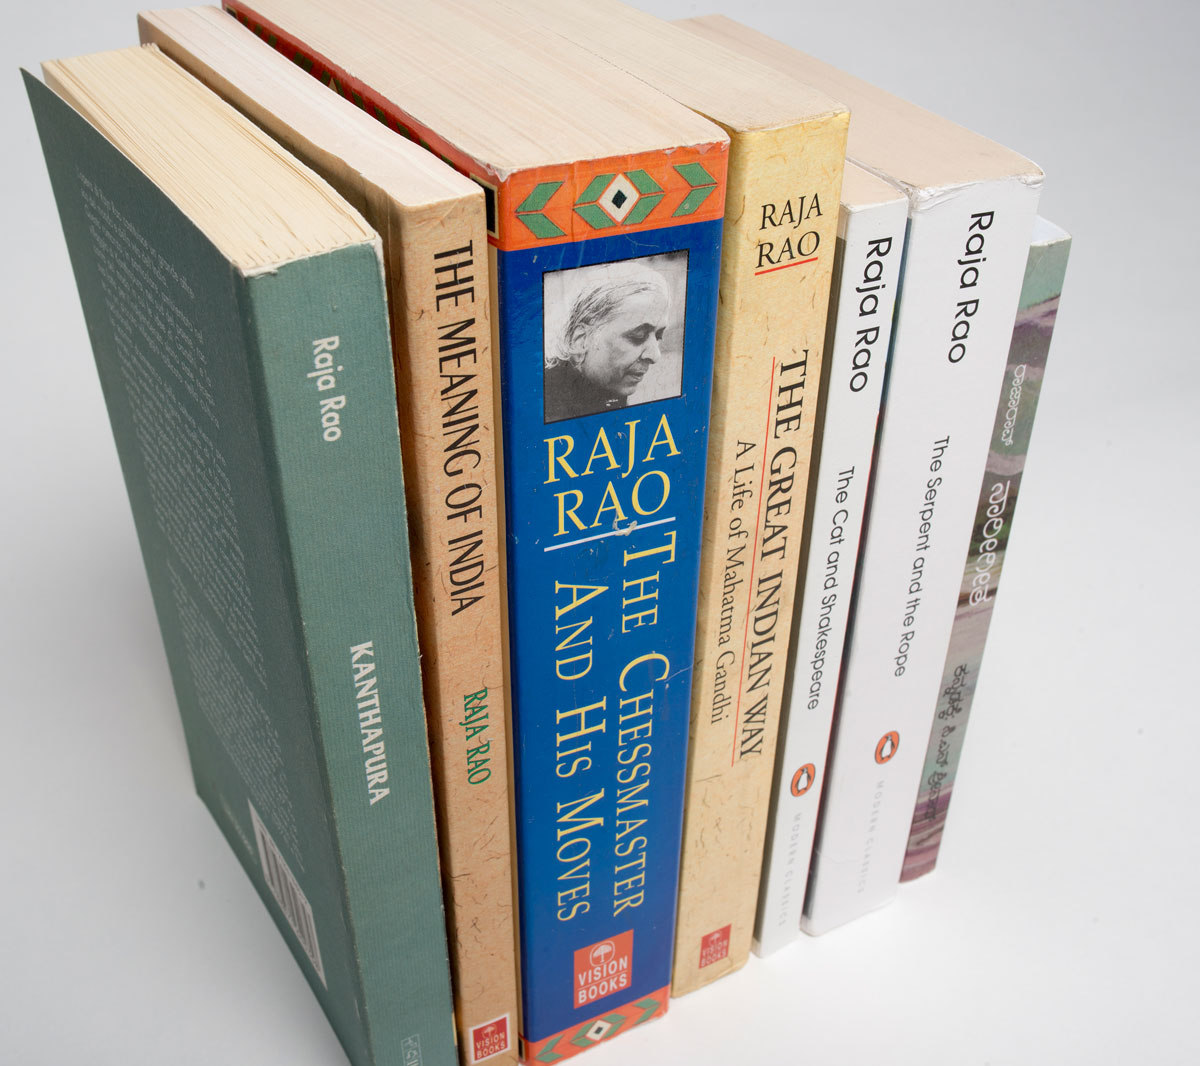 Ransom Center acquires archive of Indian author Raja Rao